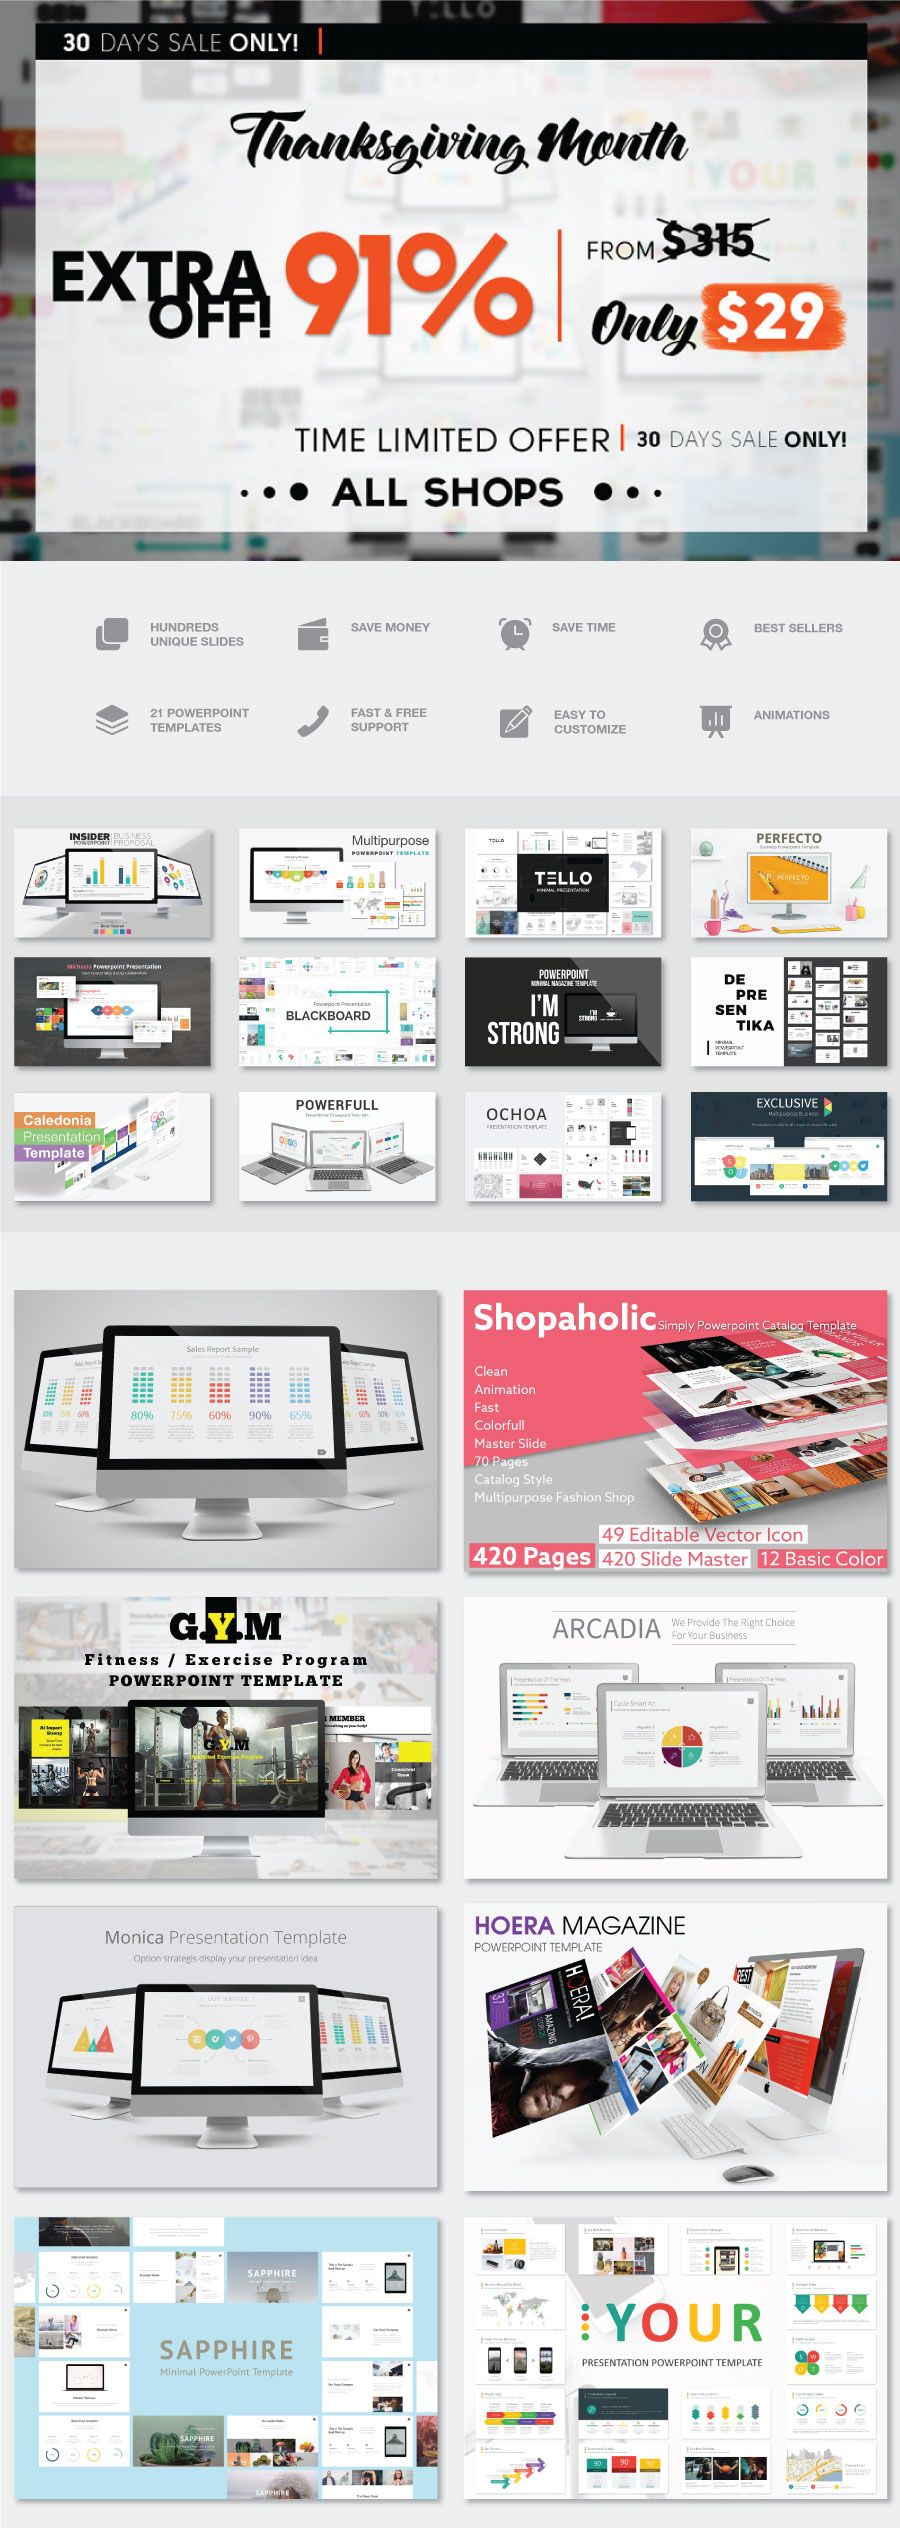 Stock powerpoint templates free download every weeks stock powerpoint templates free download every weeks thanksgiving month all shop presentation bundle toneelgroepblik Image collections